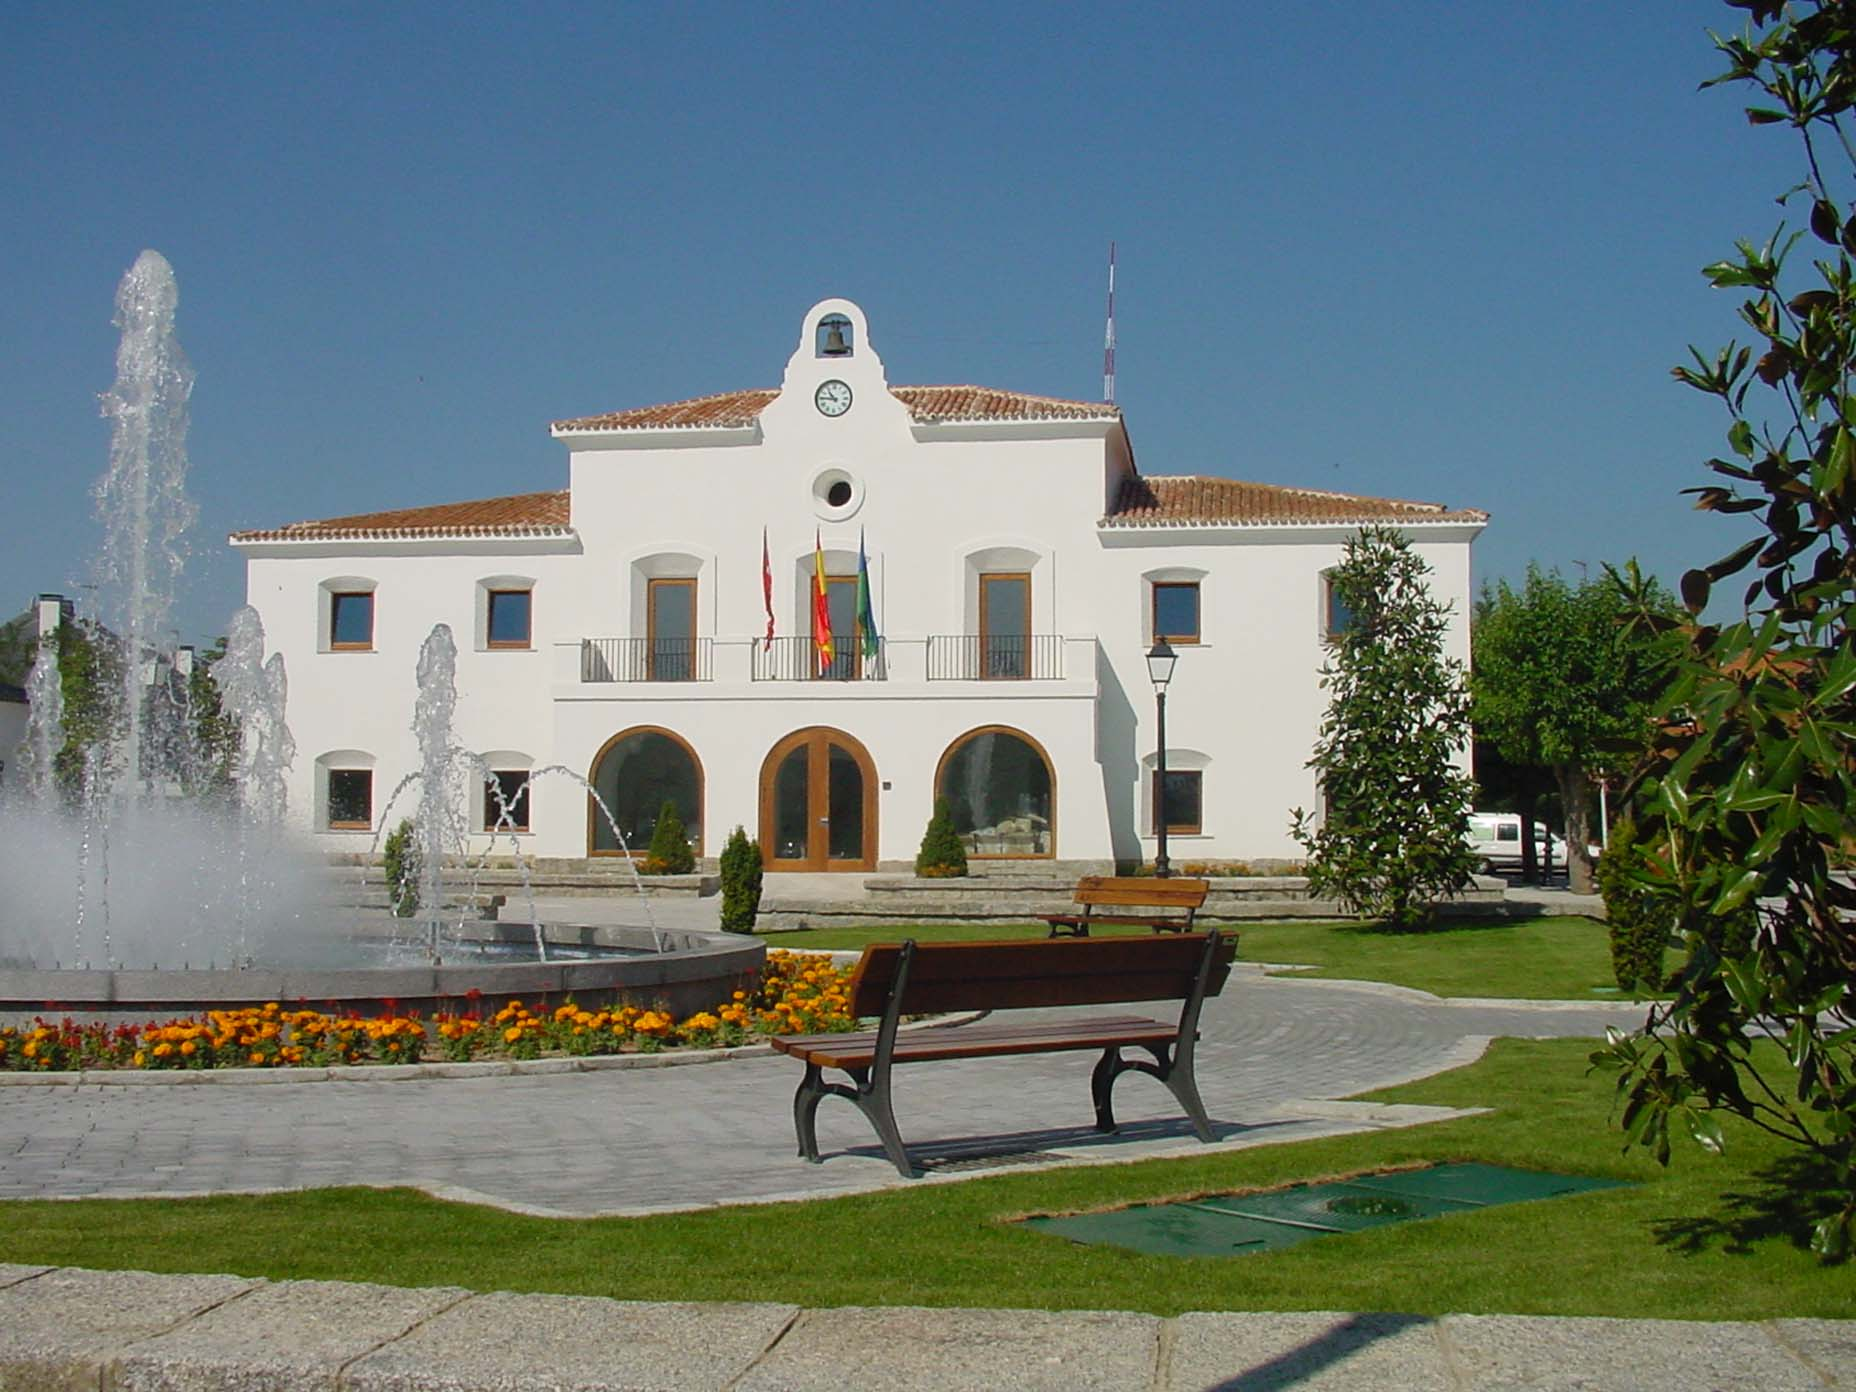 villanueva de la caada chatrooms Villanueva de la cañada is a municipality in the west of the comunidad de madrid (), north-west of the city of madridit borders valdemorillo and villanueva del pardillo to the north, majadahonda, boadilla del monte and villaviciosa de odón to the east, brunete to the south and borders quijorna to the west.